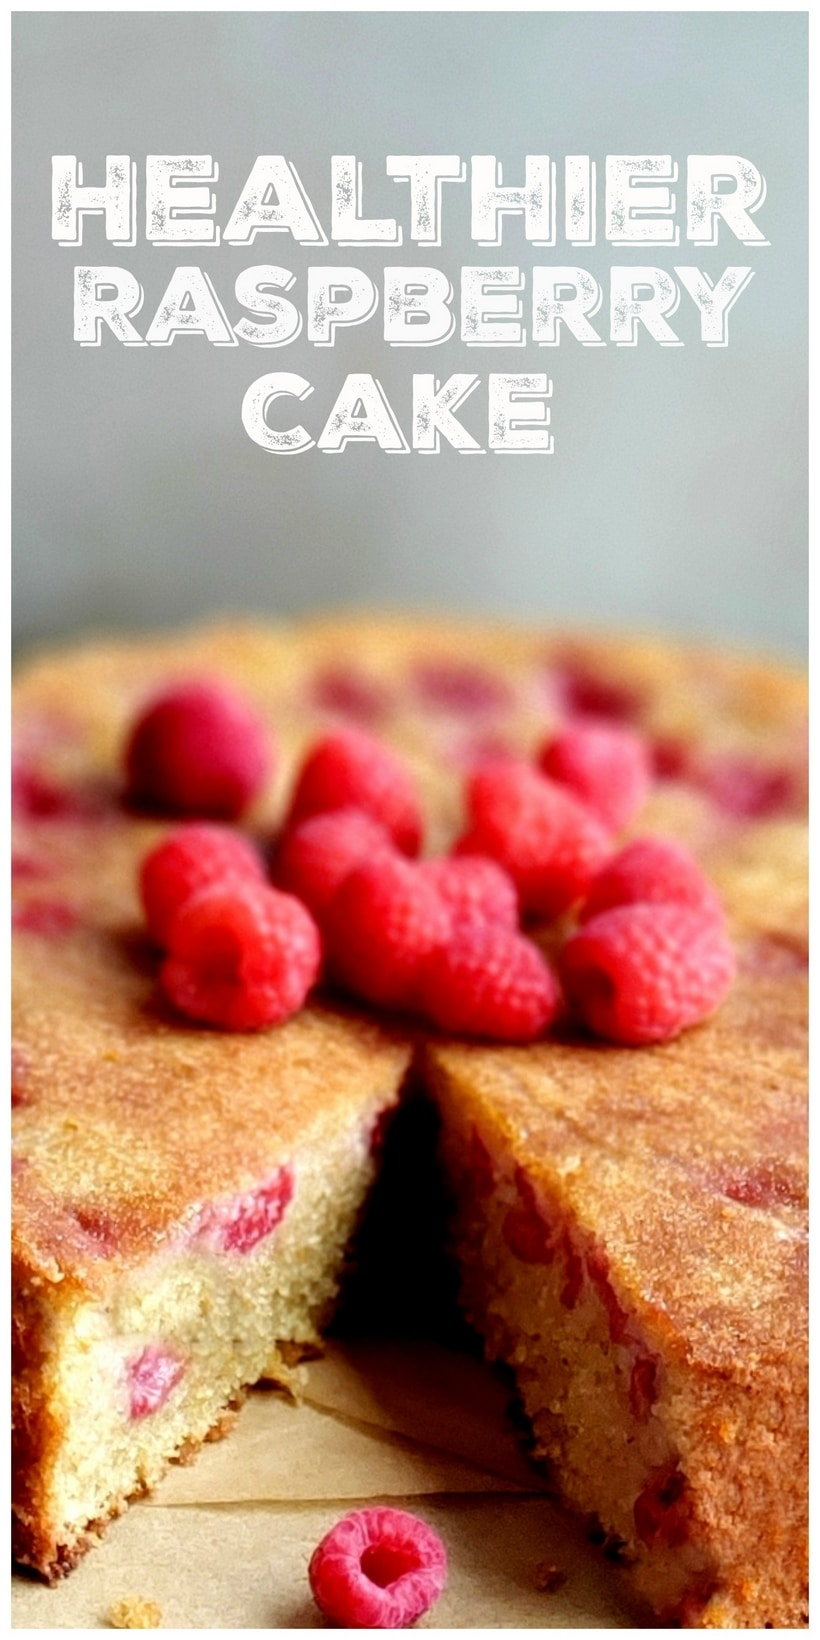 This rustic, buttery cake makes a luscious, golden frame for fresh raspberries. Serve this healthier version of raspberry cake with a dollop of freshly whipped cream and extra raspberries on the side. via @cmpollak1